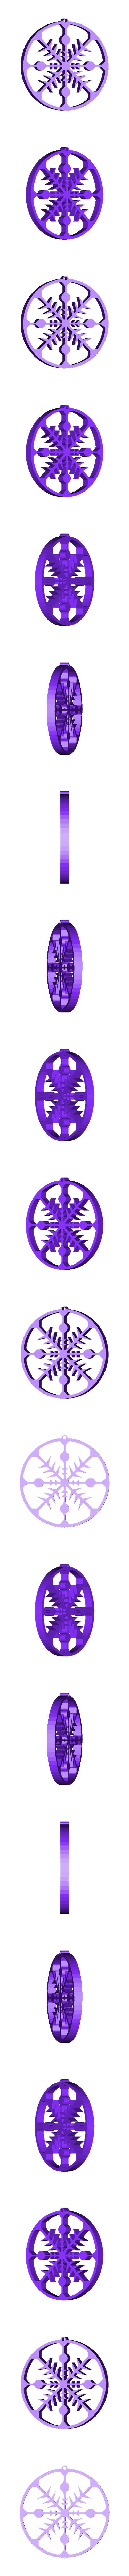 Snowflake.STL Download free STL file Christmas ornament • 3D printing model, MYLITTLE3DDESIGNS